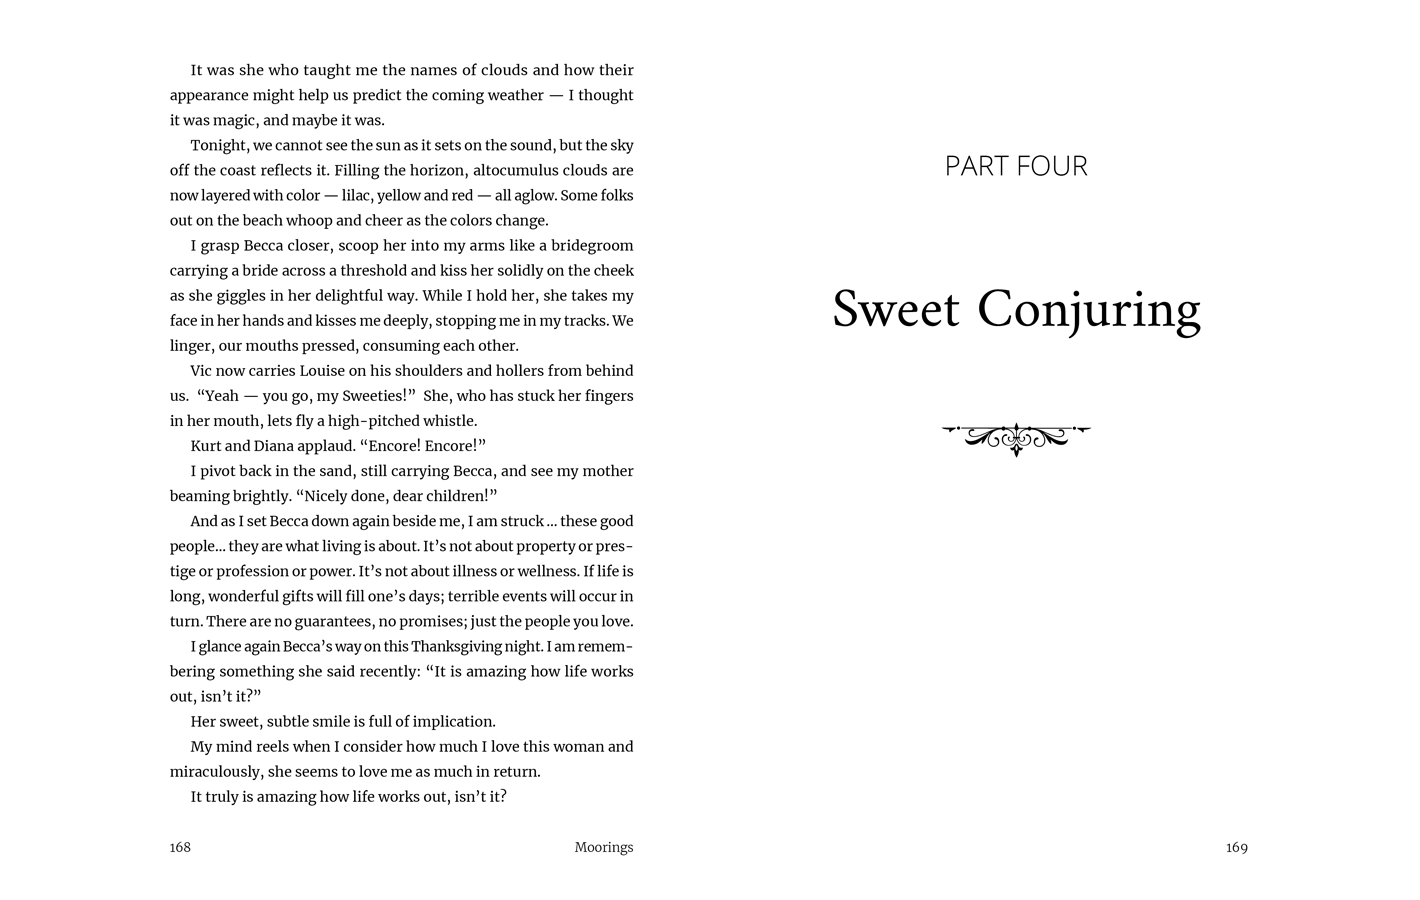 Part Four - Sweet Conjuring for Moorings